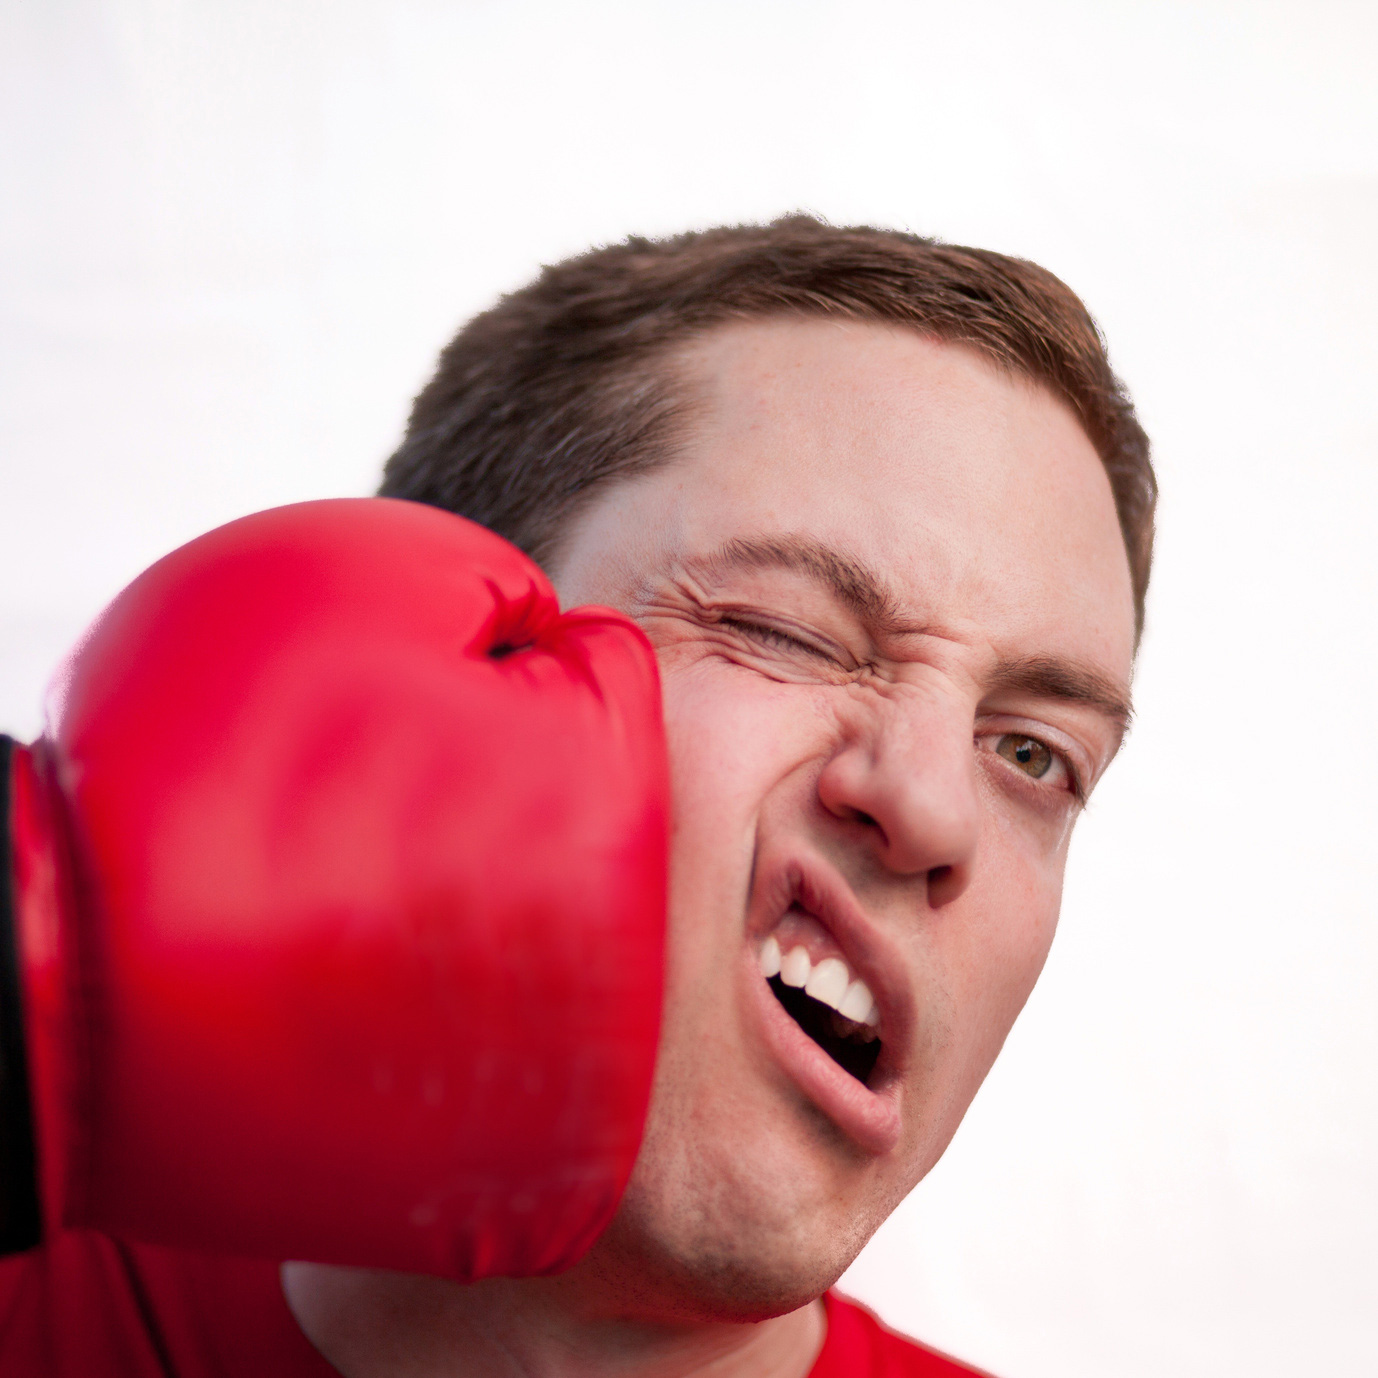 Man being hit in the face with a red boxing glove